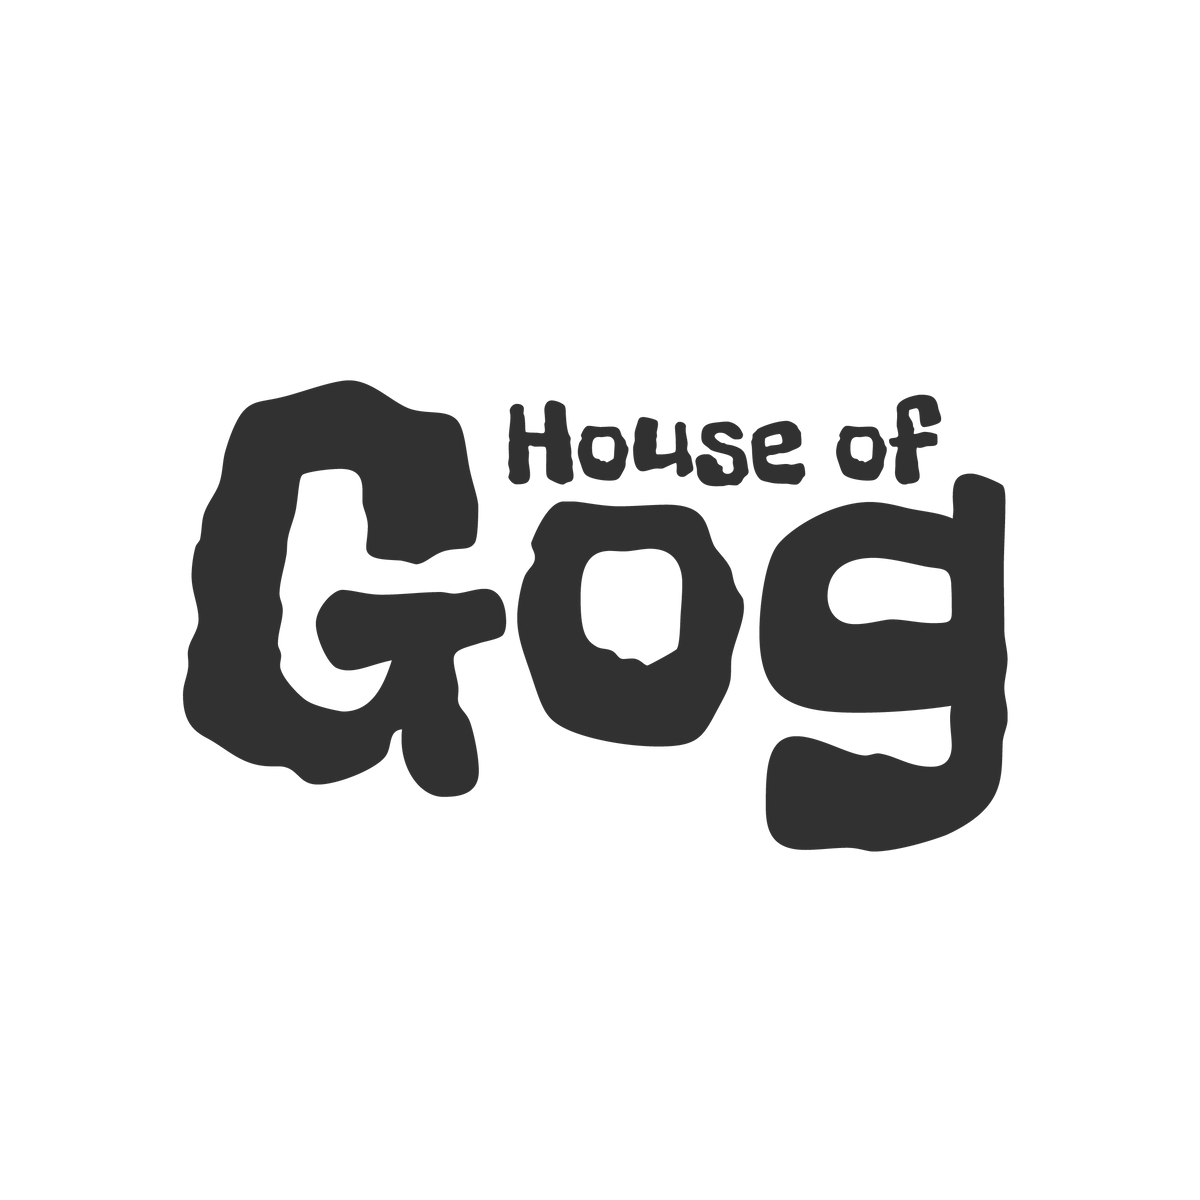 House of Gog